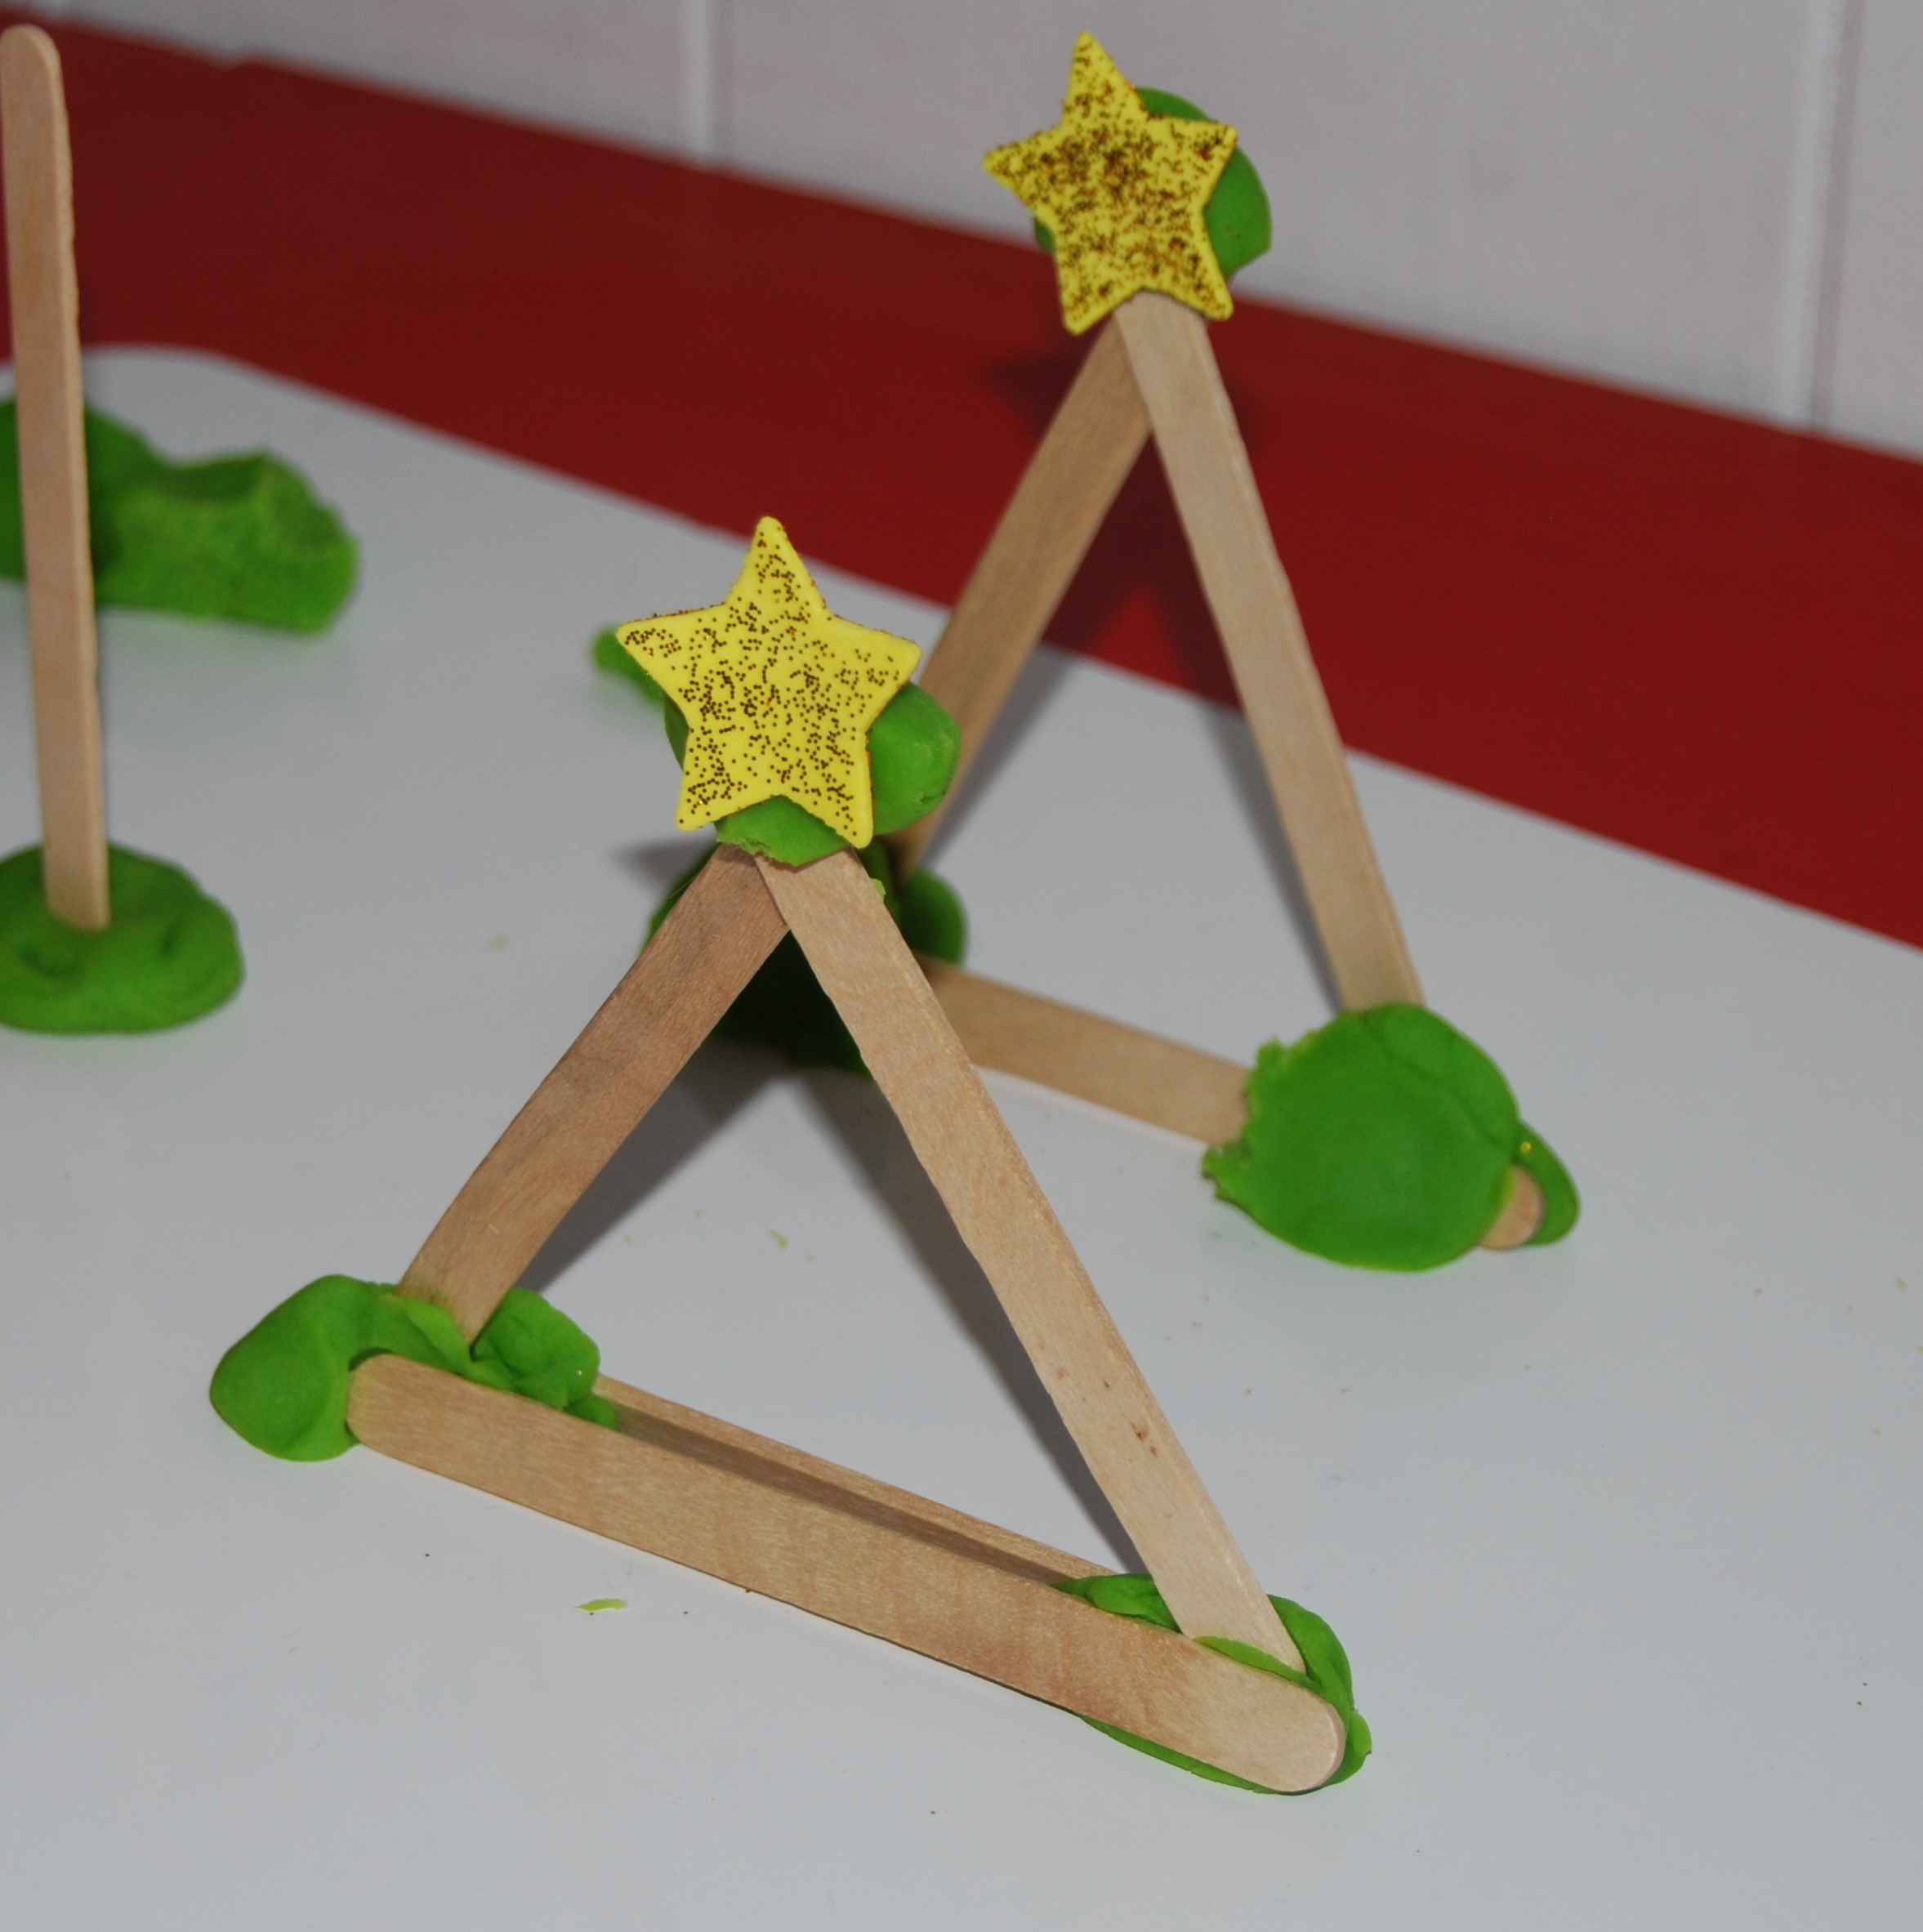 Stem School Kindergarten: Winter STEM Activity For Preschool: Evergreen Tree